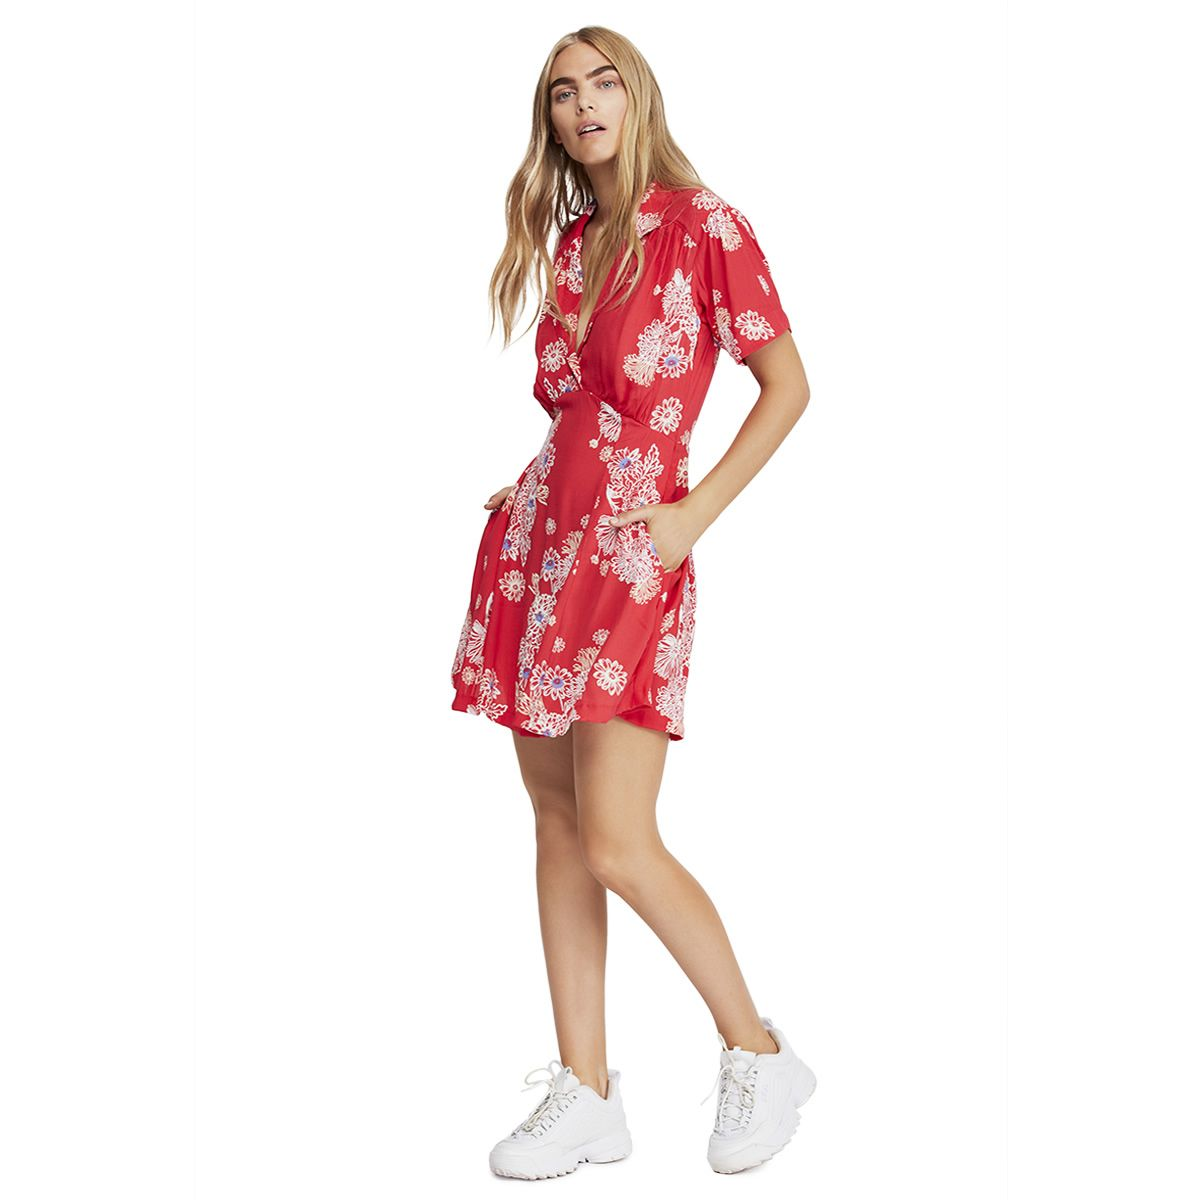 1ac286d81a49 Free People Dresses for Women - Macy's